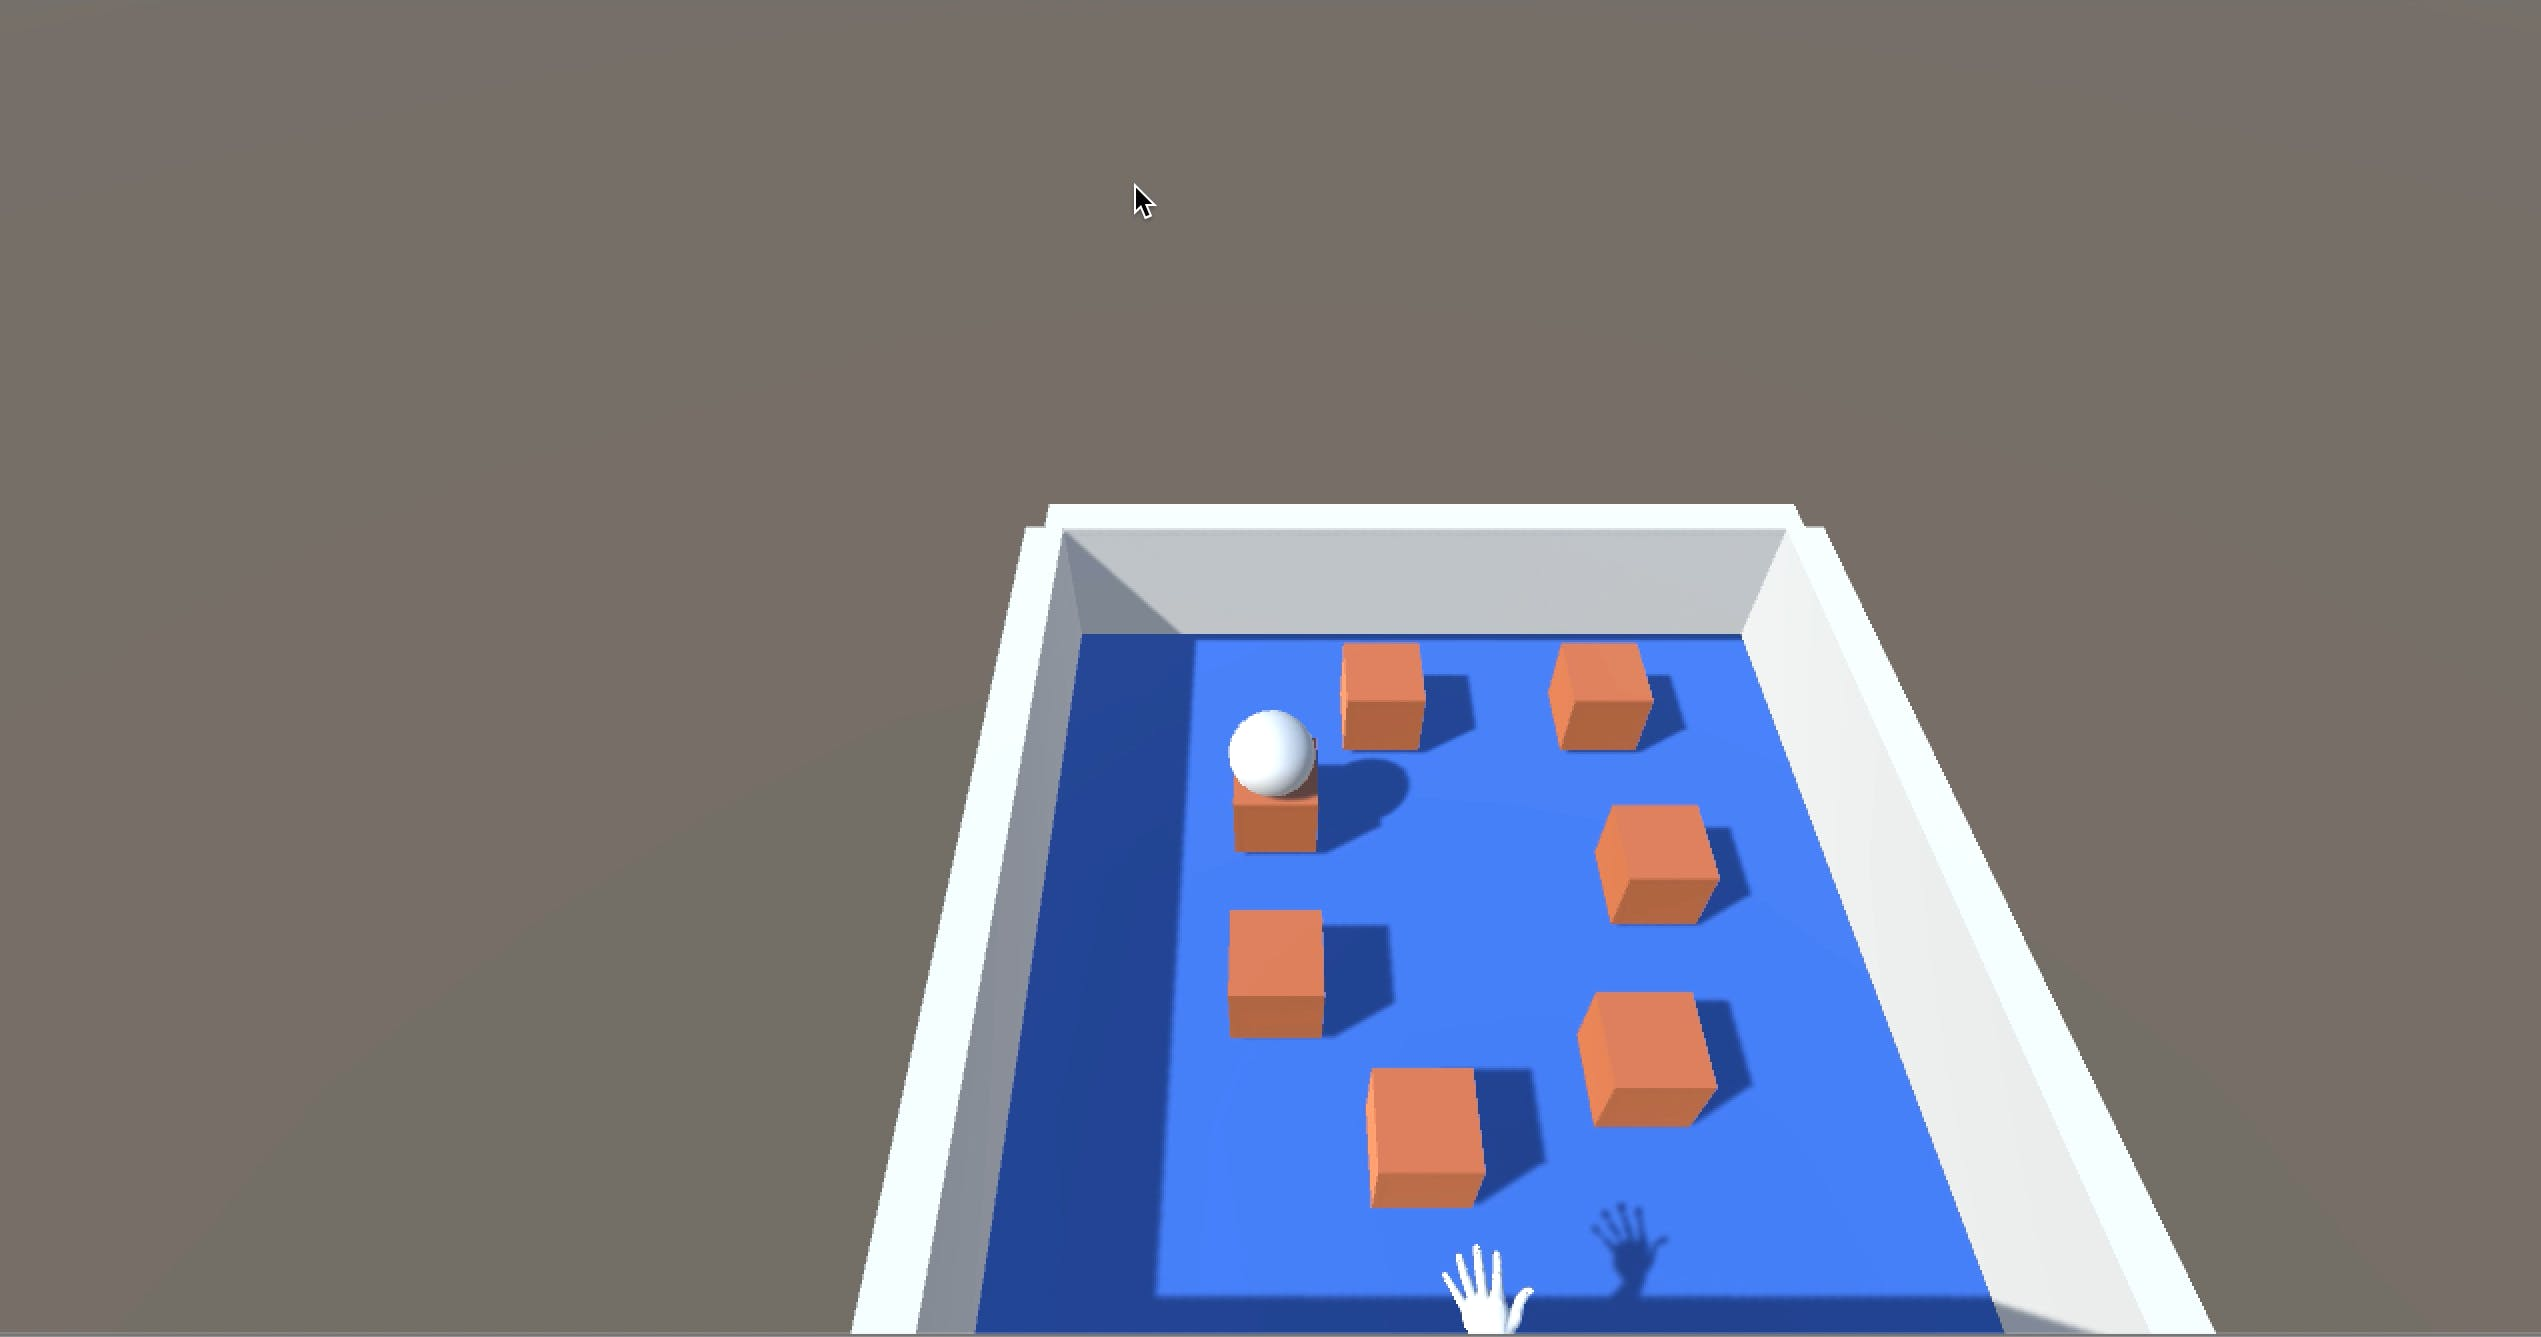 The user can balance the ball on any one of the blocks. [Believe me, this is not easy. :) ]